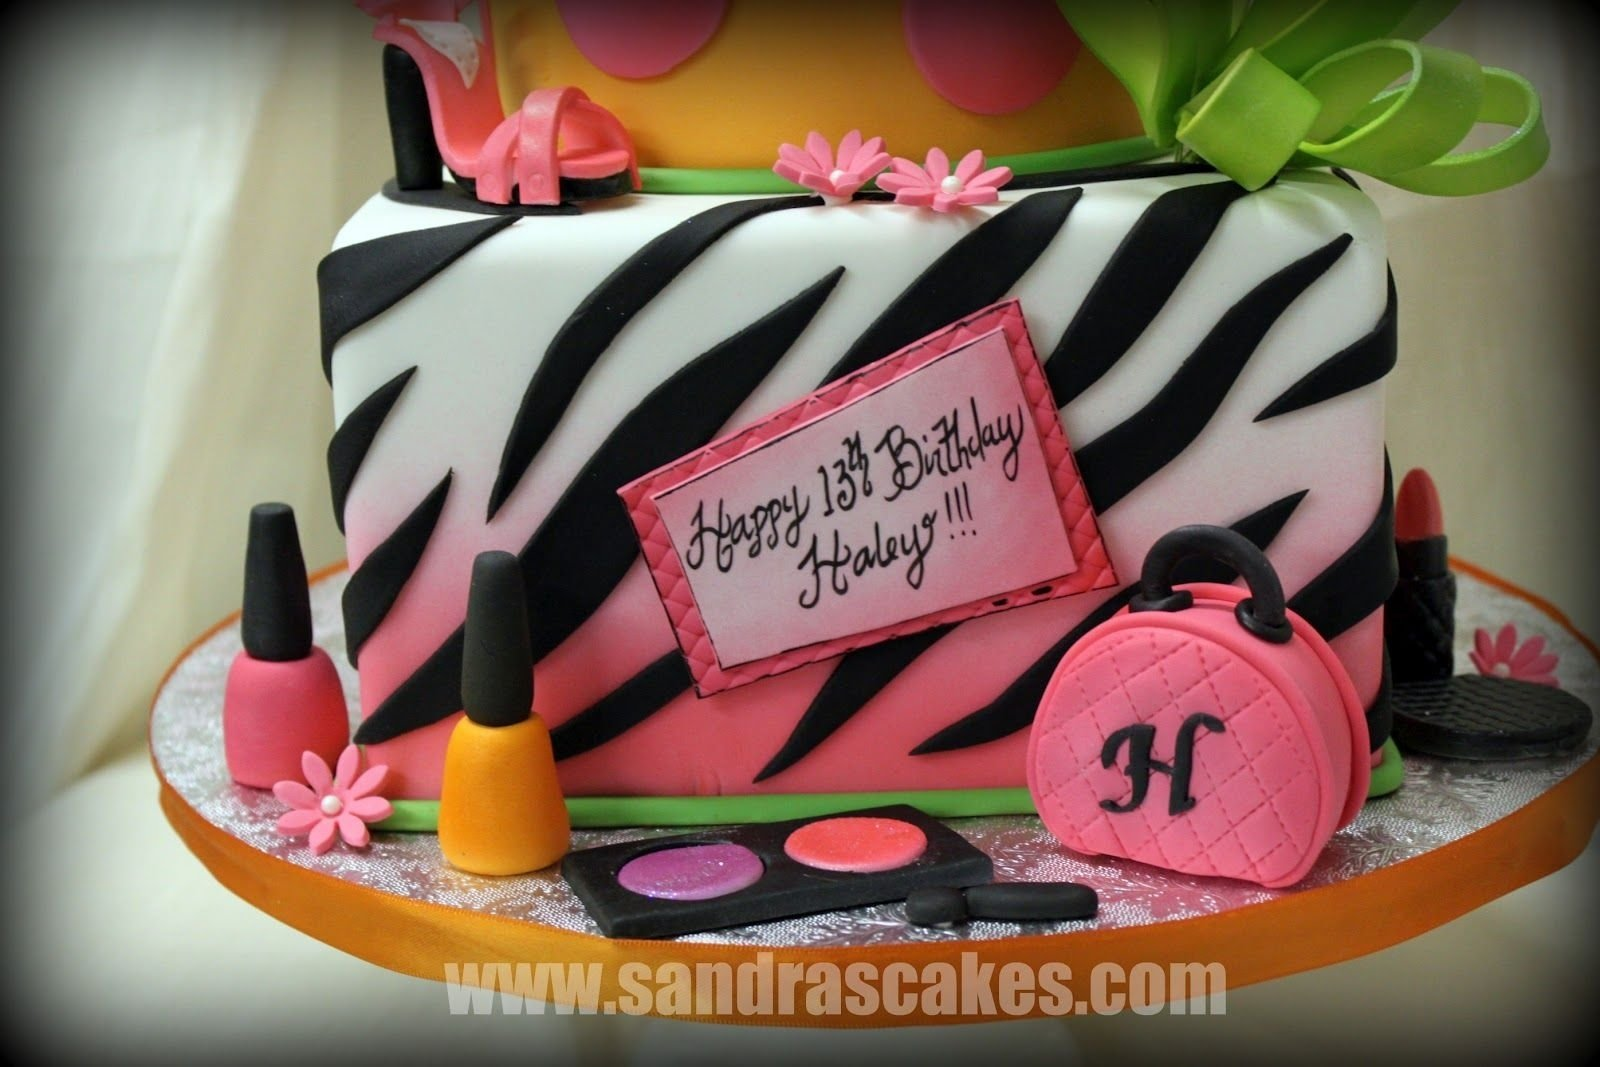 10 Best Fun Birthday Ideas For 13 Year Olds 13th birthday cake ideas for girls sandras cakes fun and 1 2021